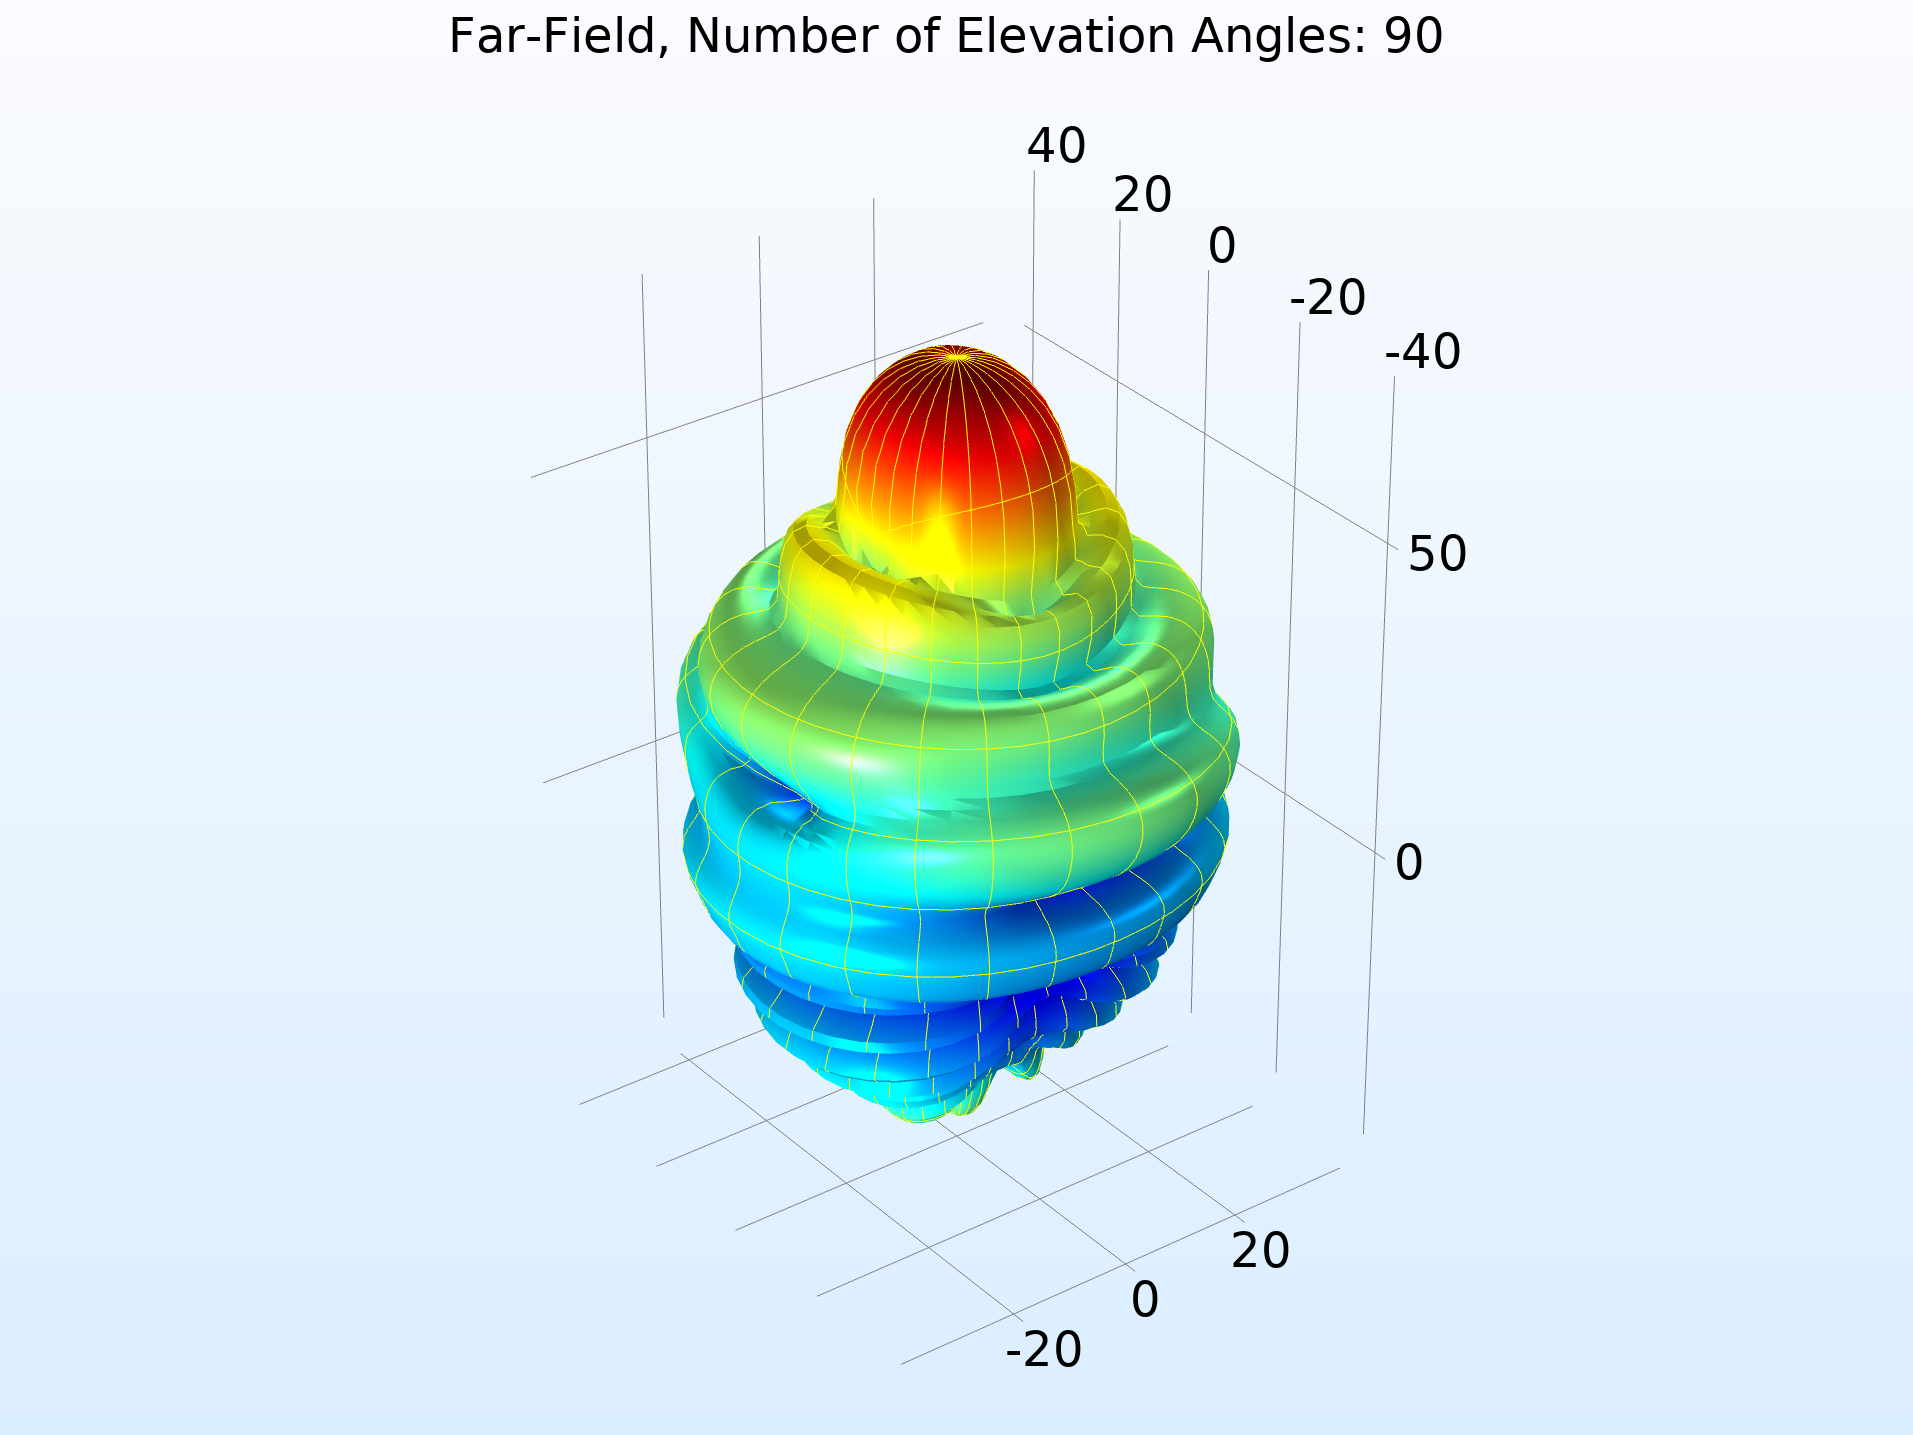 A plot of the far-field norm function with 90 elevation angles.